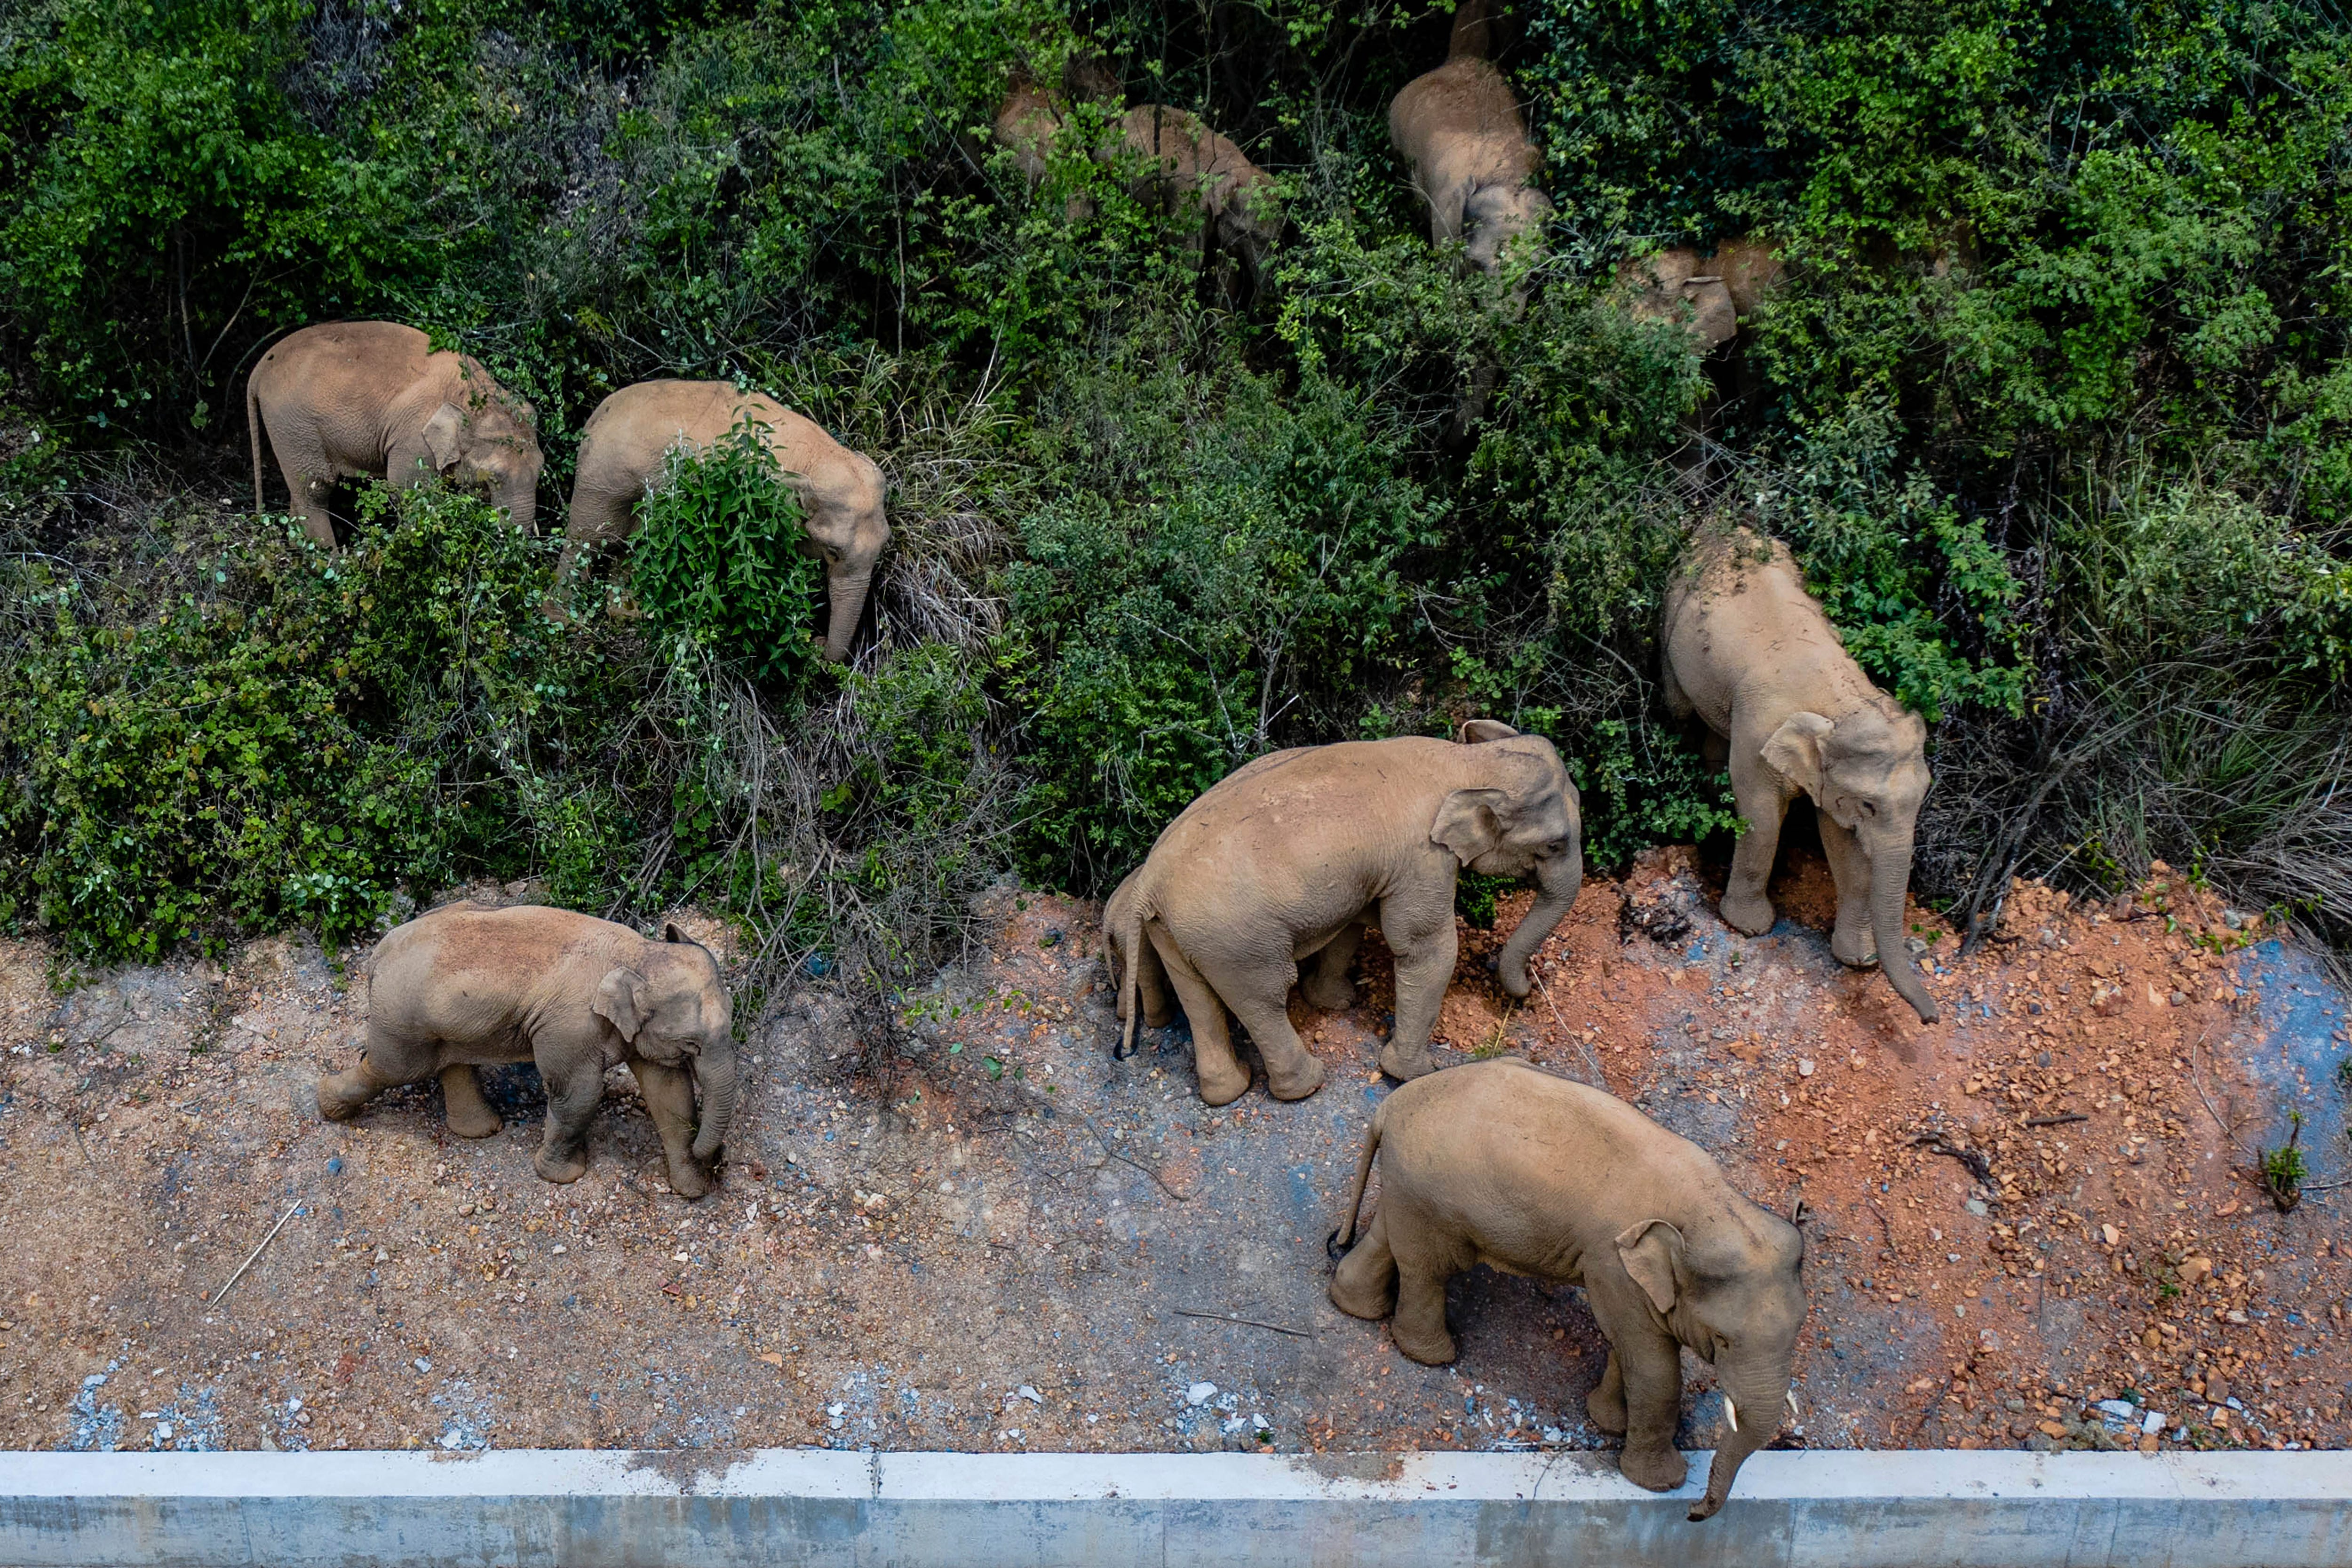 China tries to keep elephant herd out of city of 7 million 2